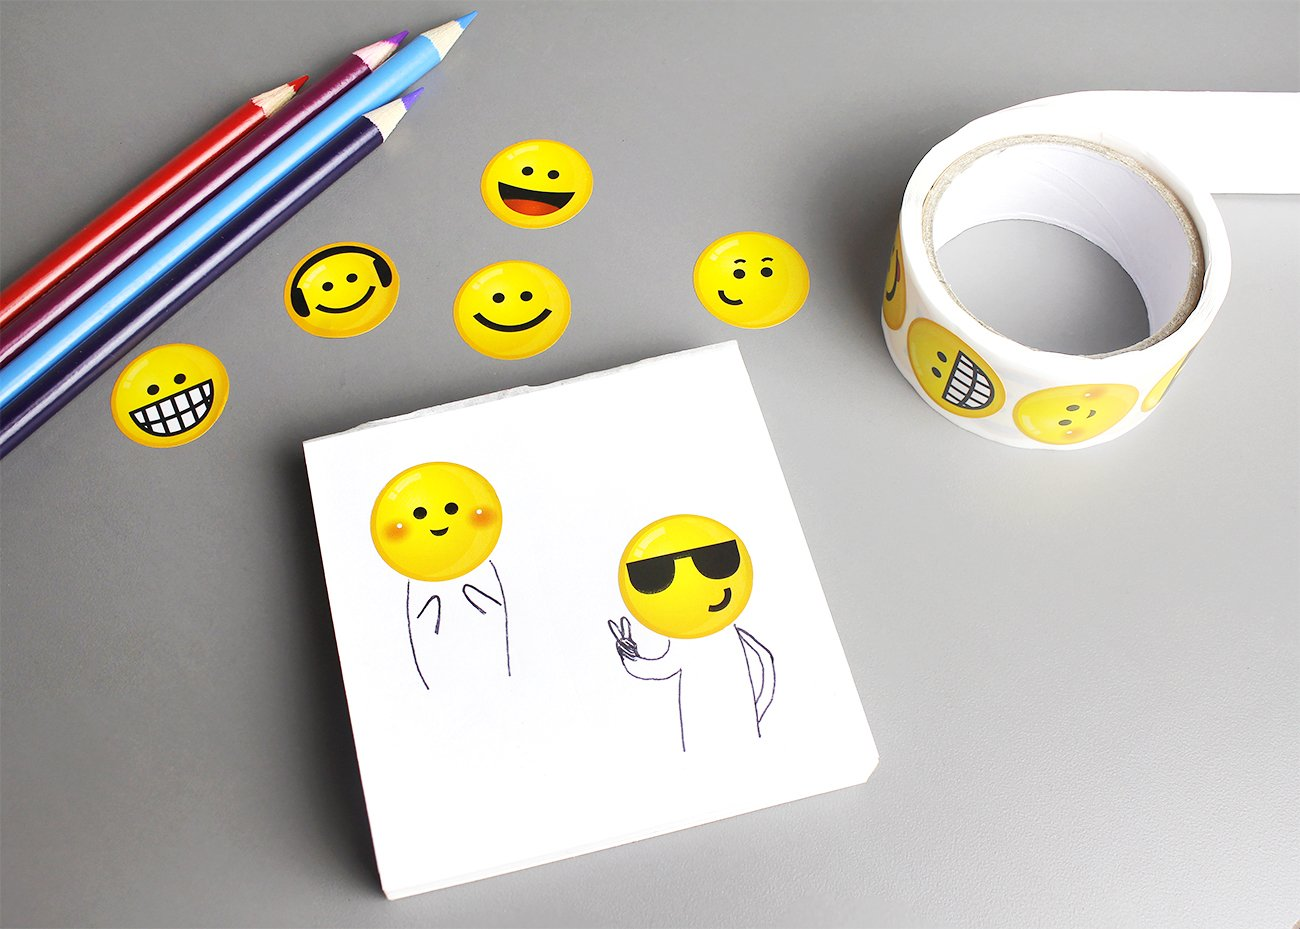 4 Rolls Juvale Teacher Stickers for Kids Smiley Sticker Motivate Encourage Students for School /& Classroom Total 600+ Reward Incentive Stickers